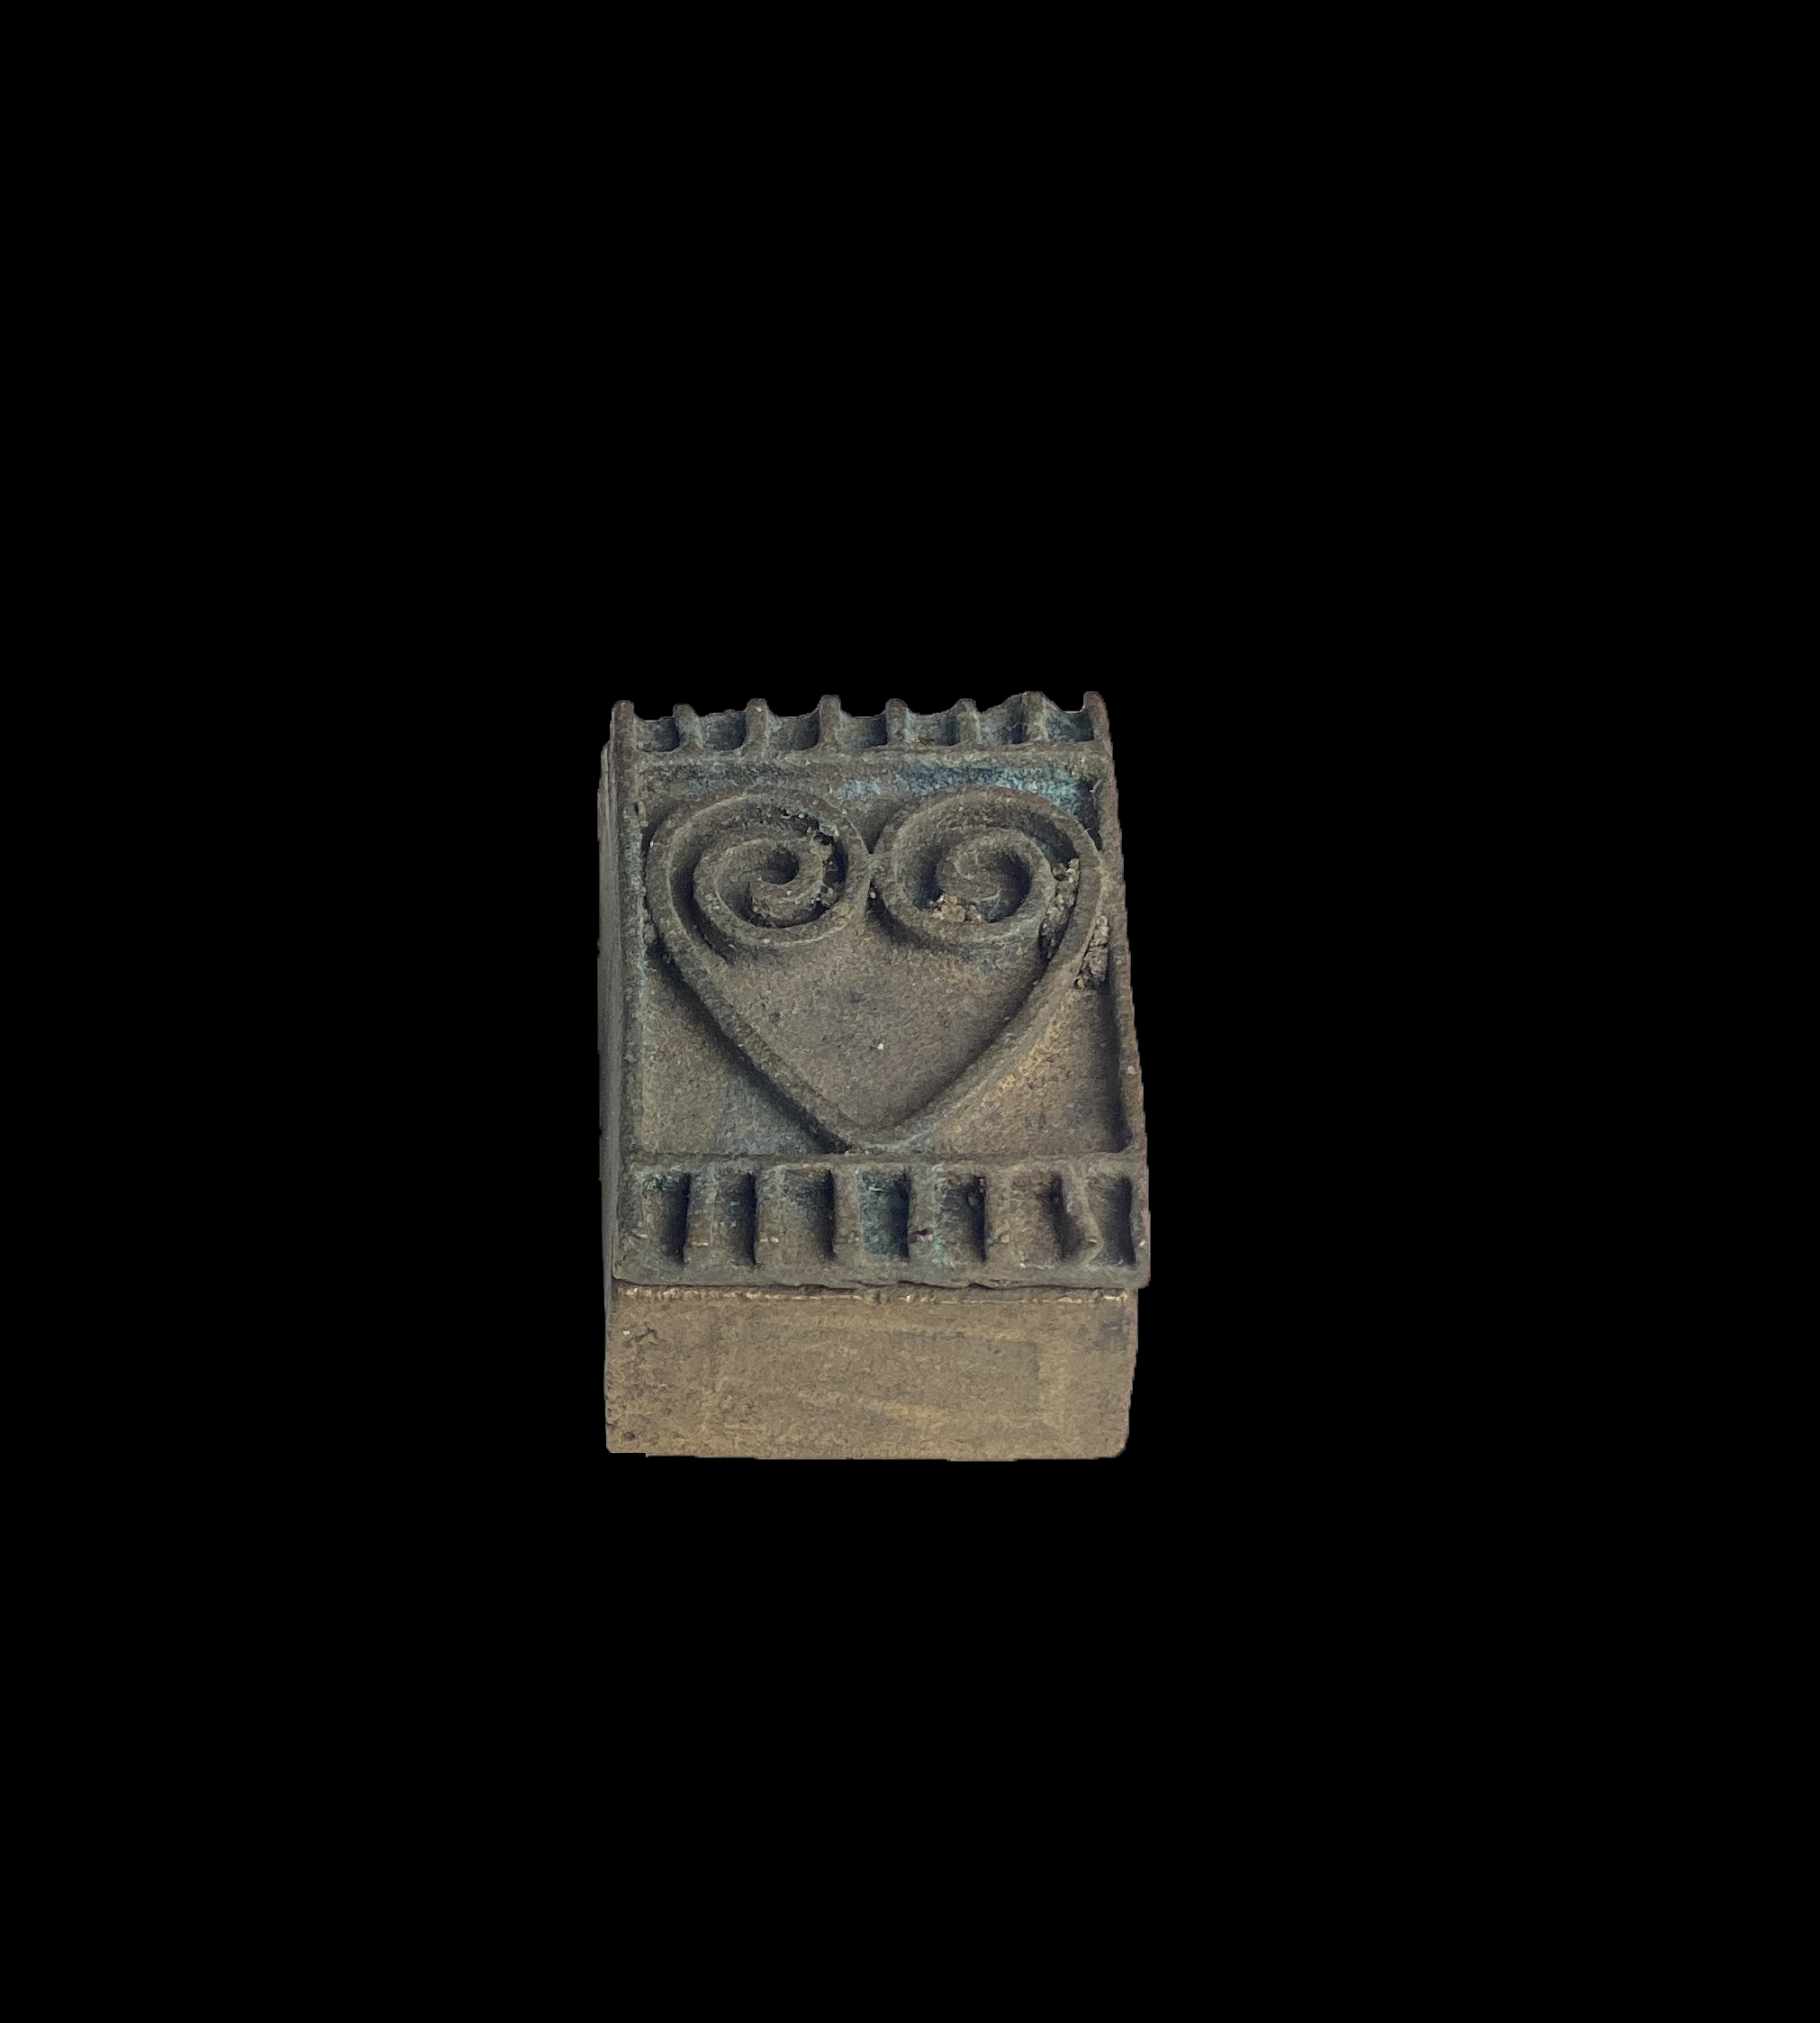 Bronze Box with Heart Design on Lid - Ashanti People, Ghana